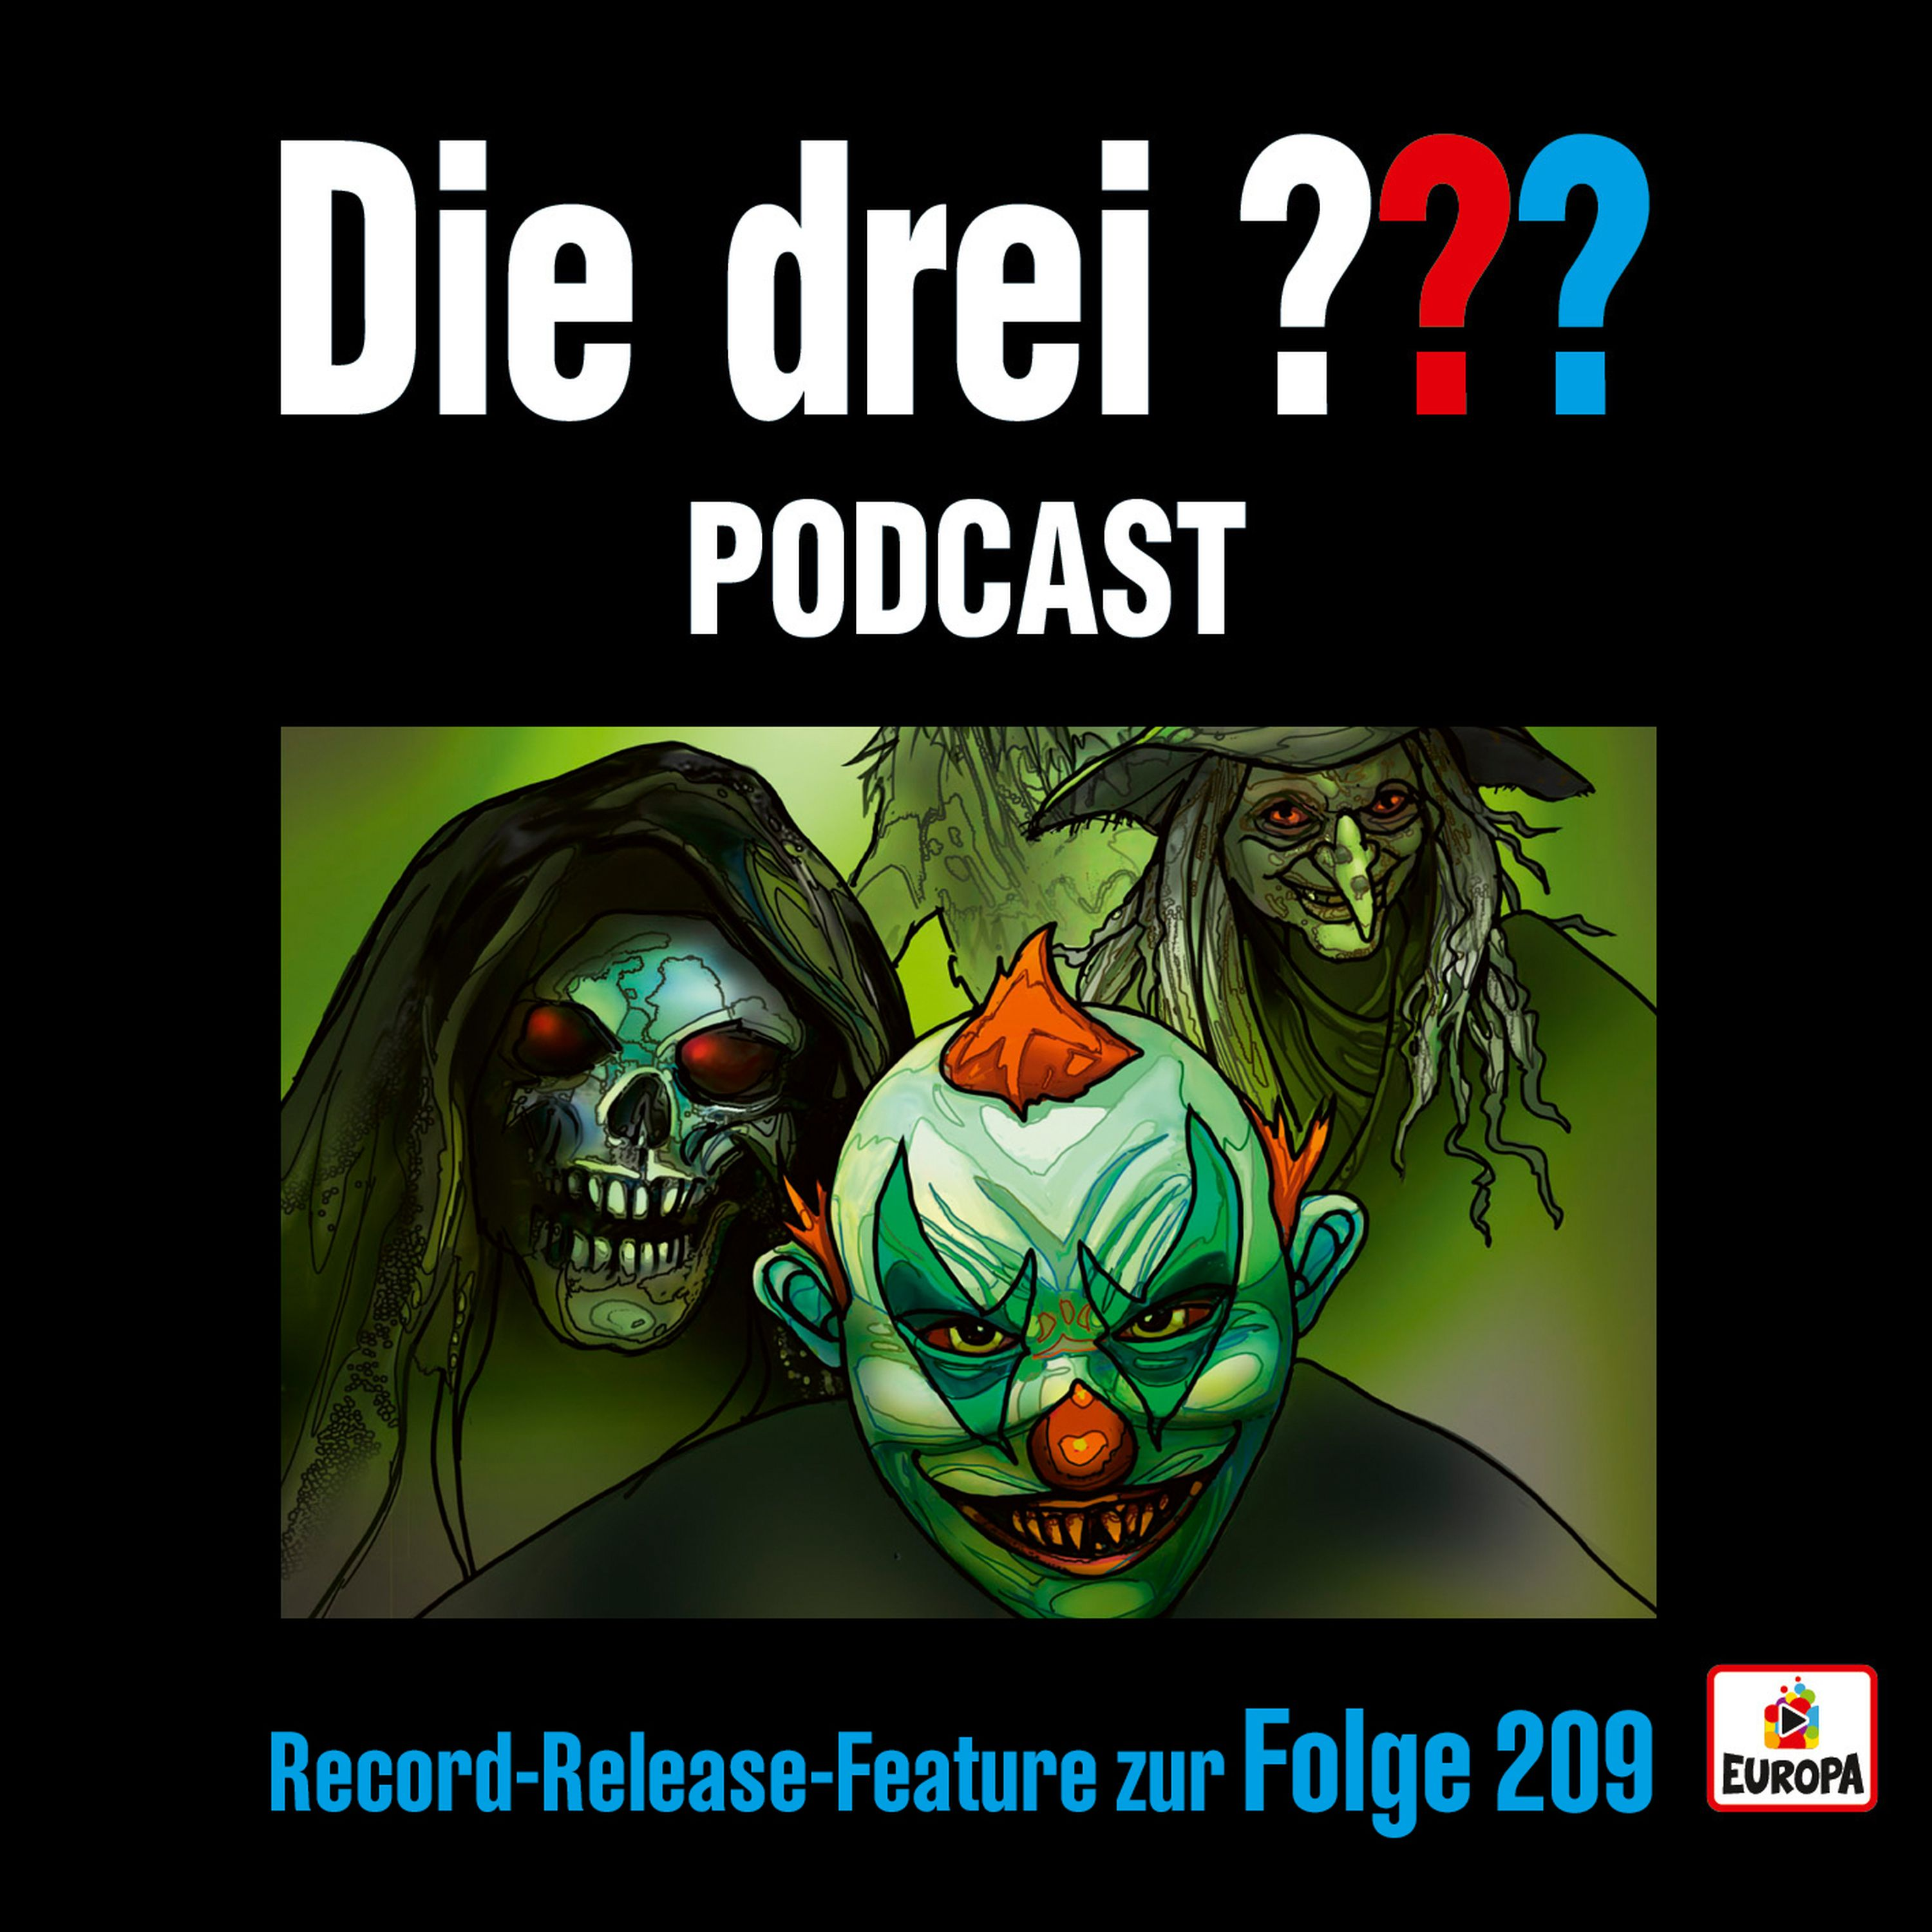 Record-Release-Feature zur Folge 209